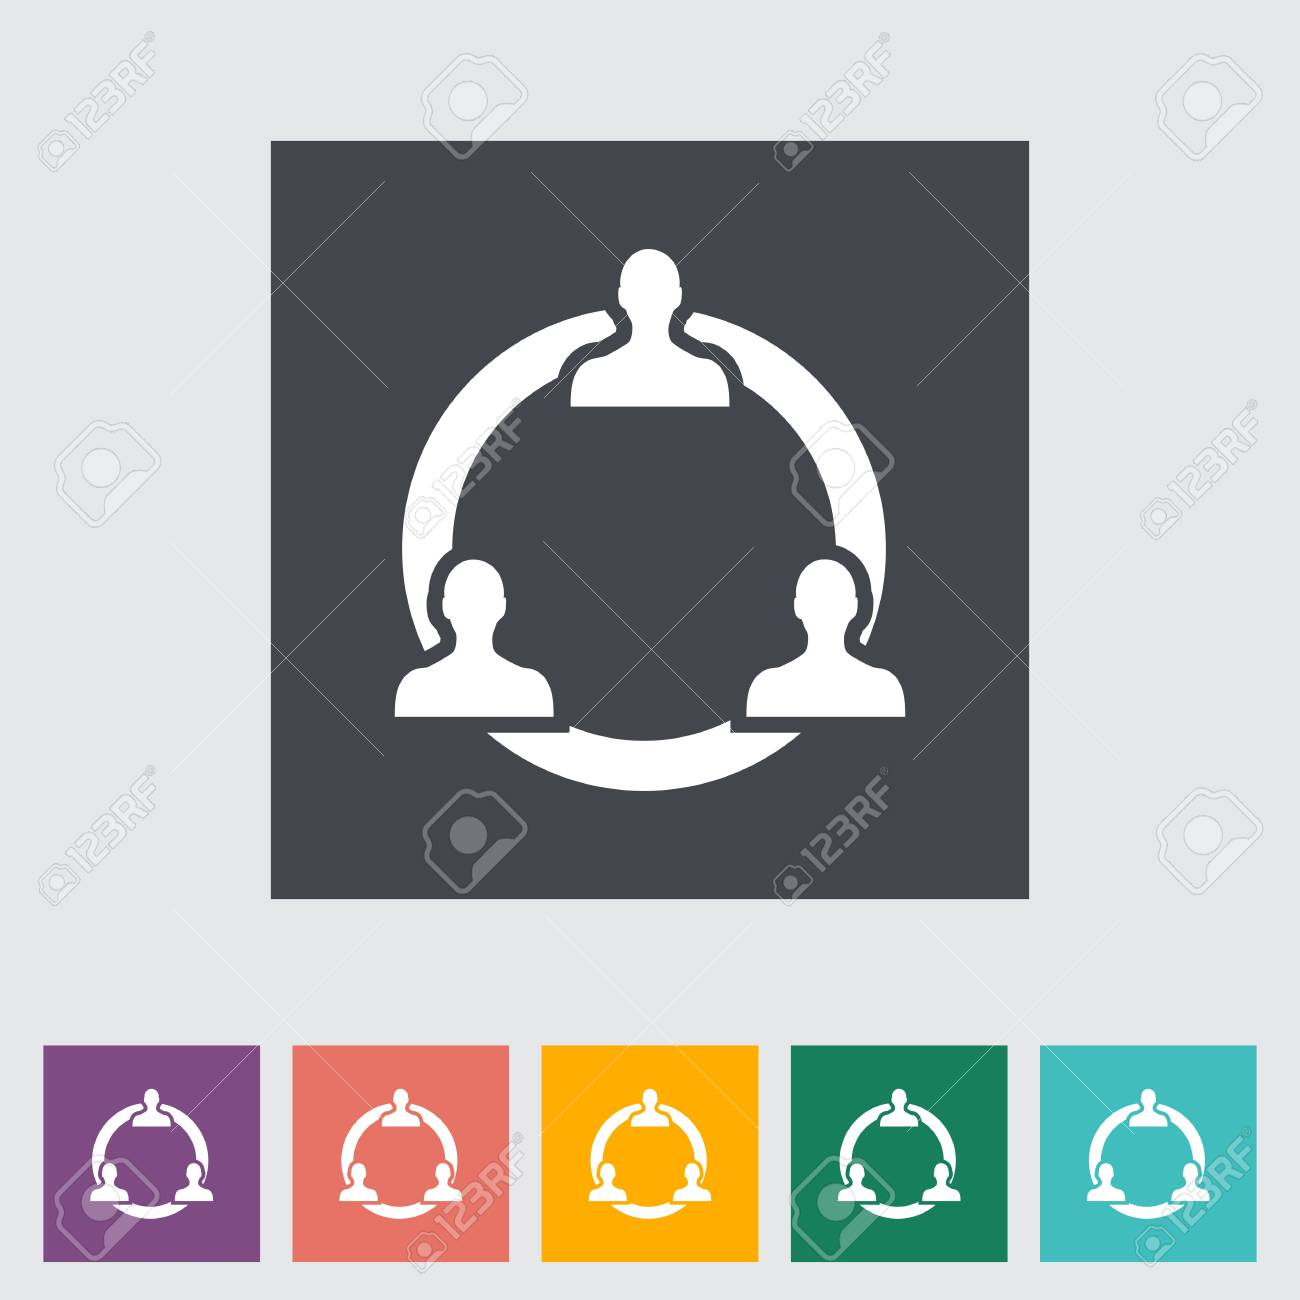 Network single flat icon. Vector illustration. Stock Illustration - 21190760